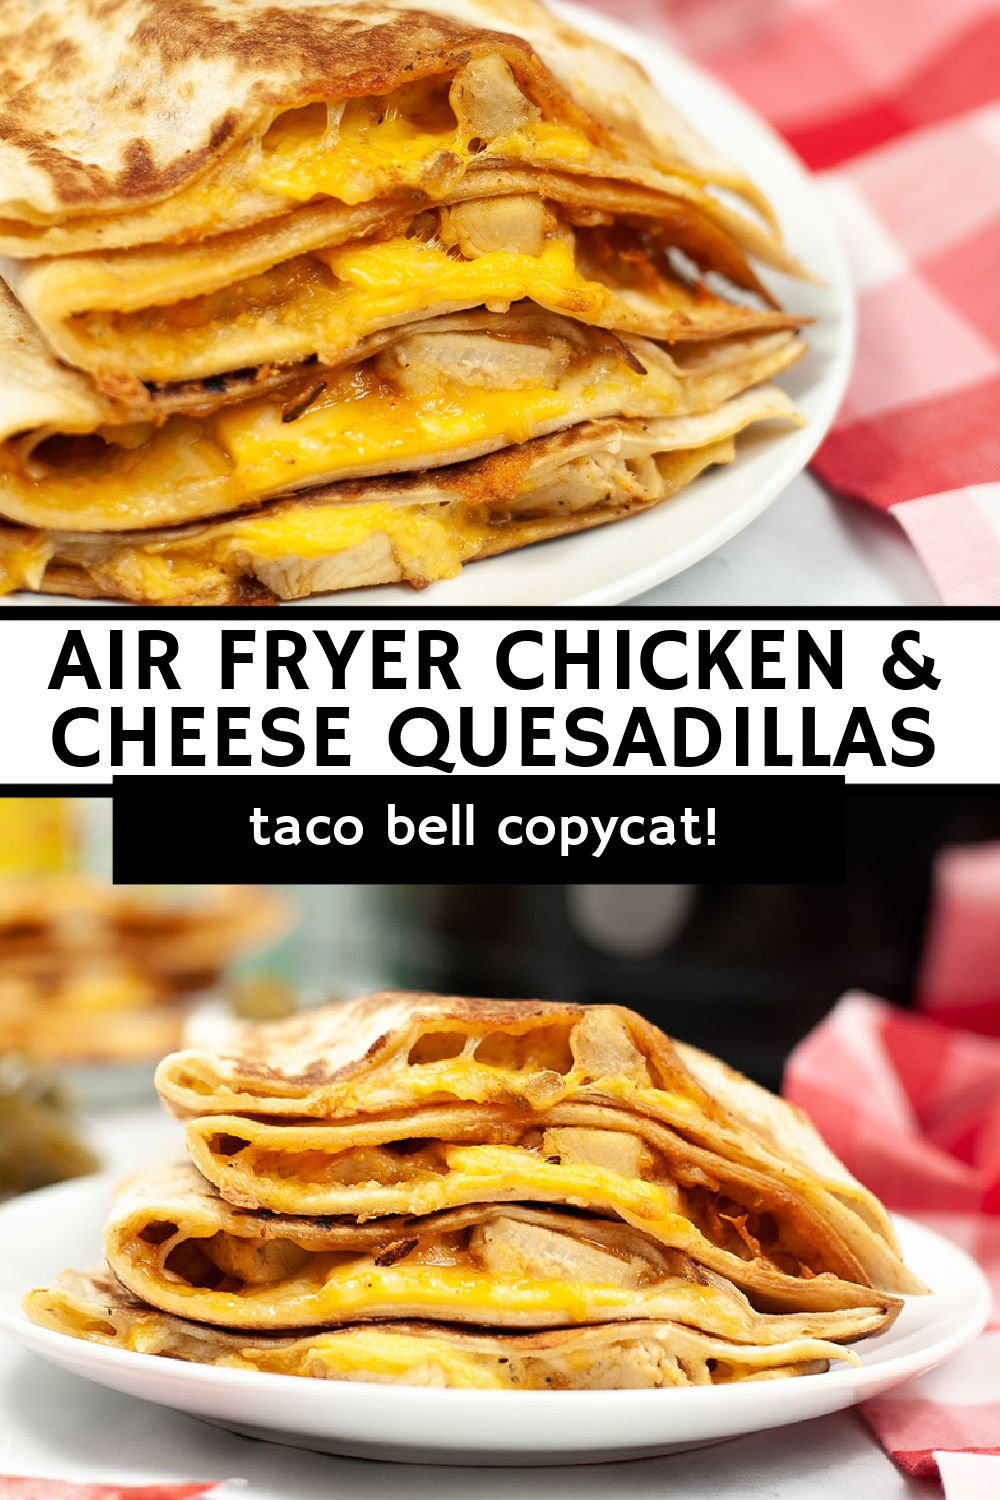 This air fryer quesadilla filled with chicken and copycat Taco Bell quesadilla sauce is a quick and easy dinner idea. Making them in the air fryer leaves the tortilla perfectly crisp and the cheese nice and melty. | www.persnicketyplates.com